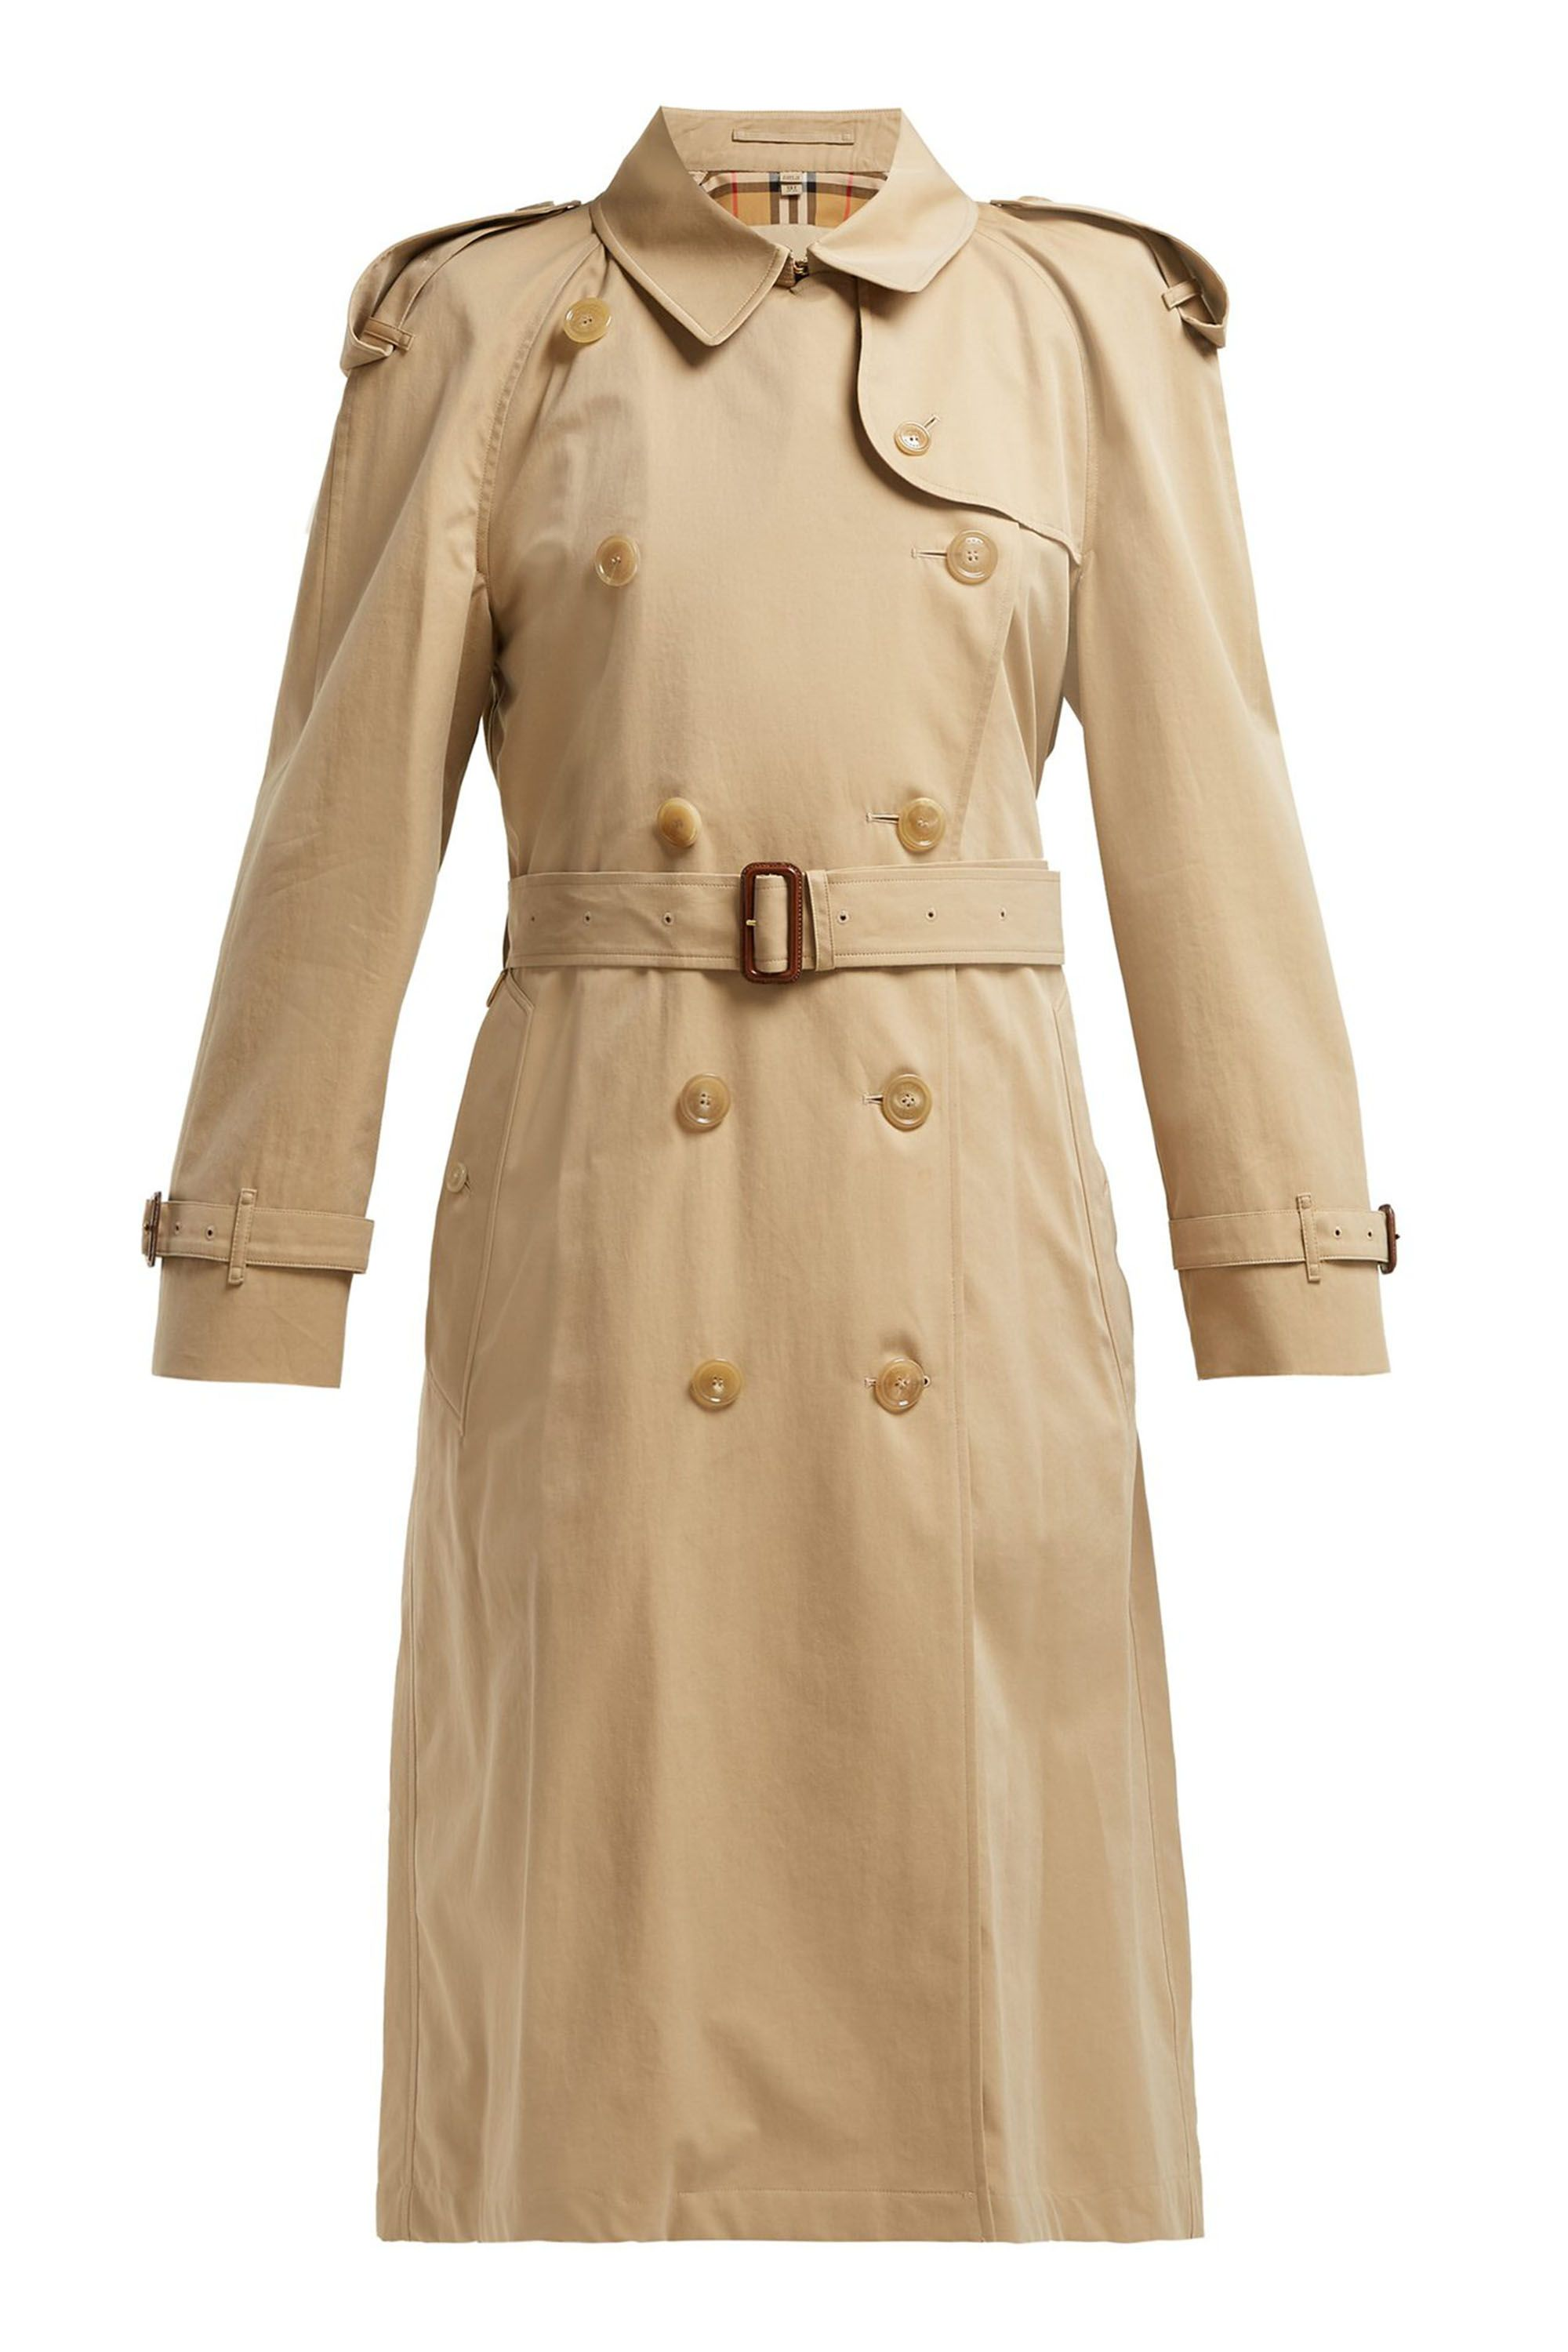 e49df11acbe The best camel coats to buy – designer camel coats to invest in 2019